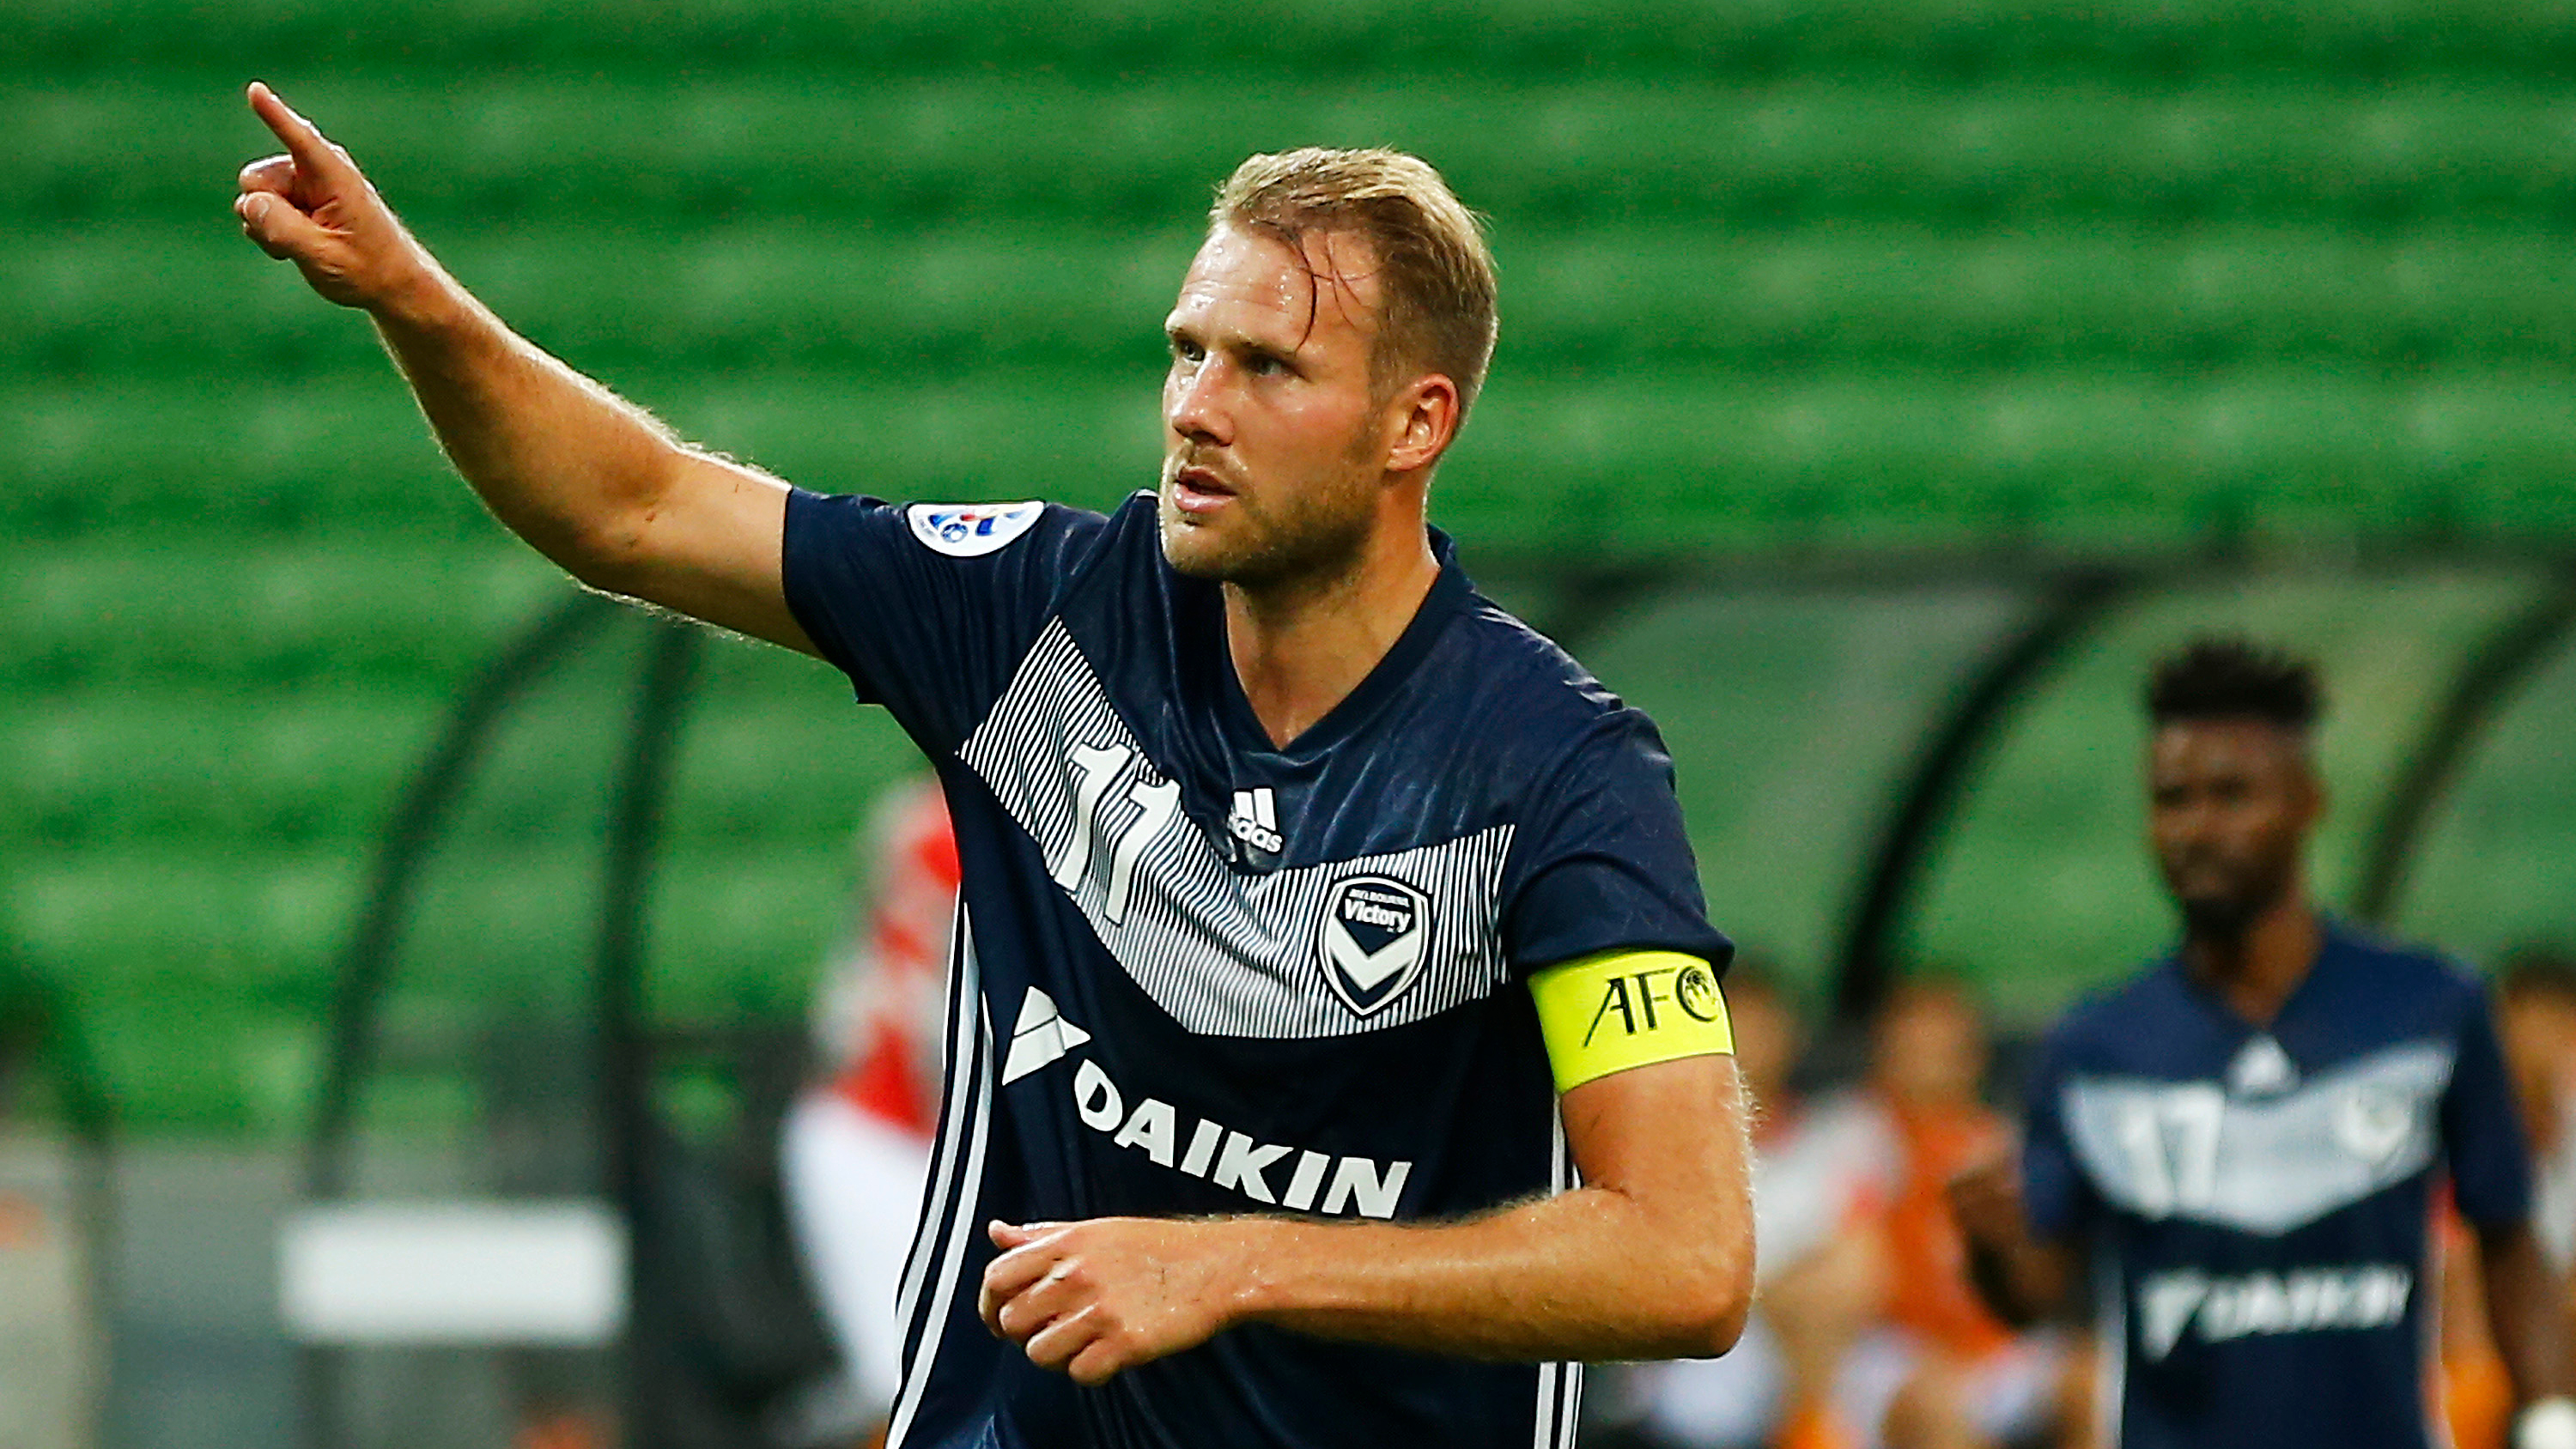 A-League and Australian football news LIVE: Toivonen hits out at Australian government